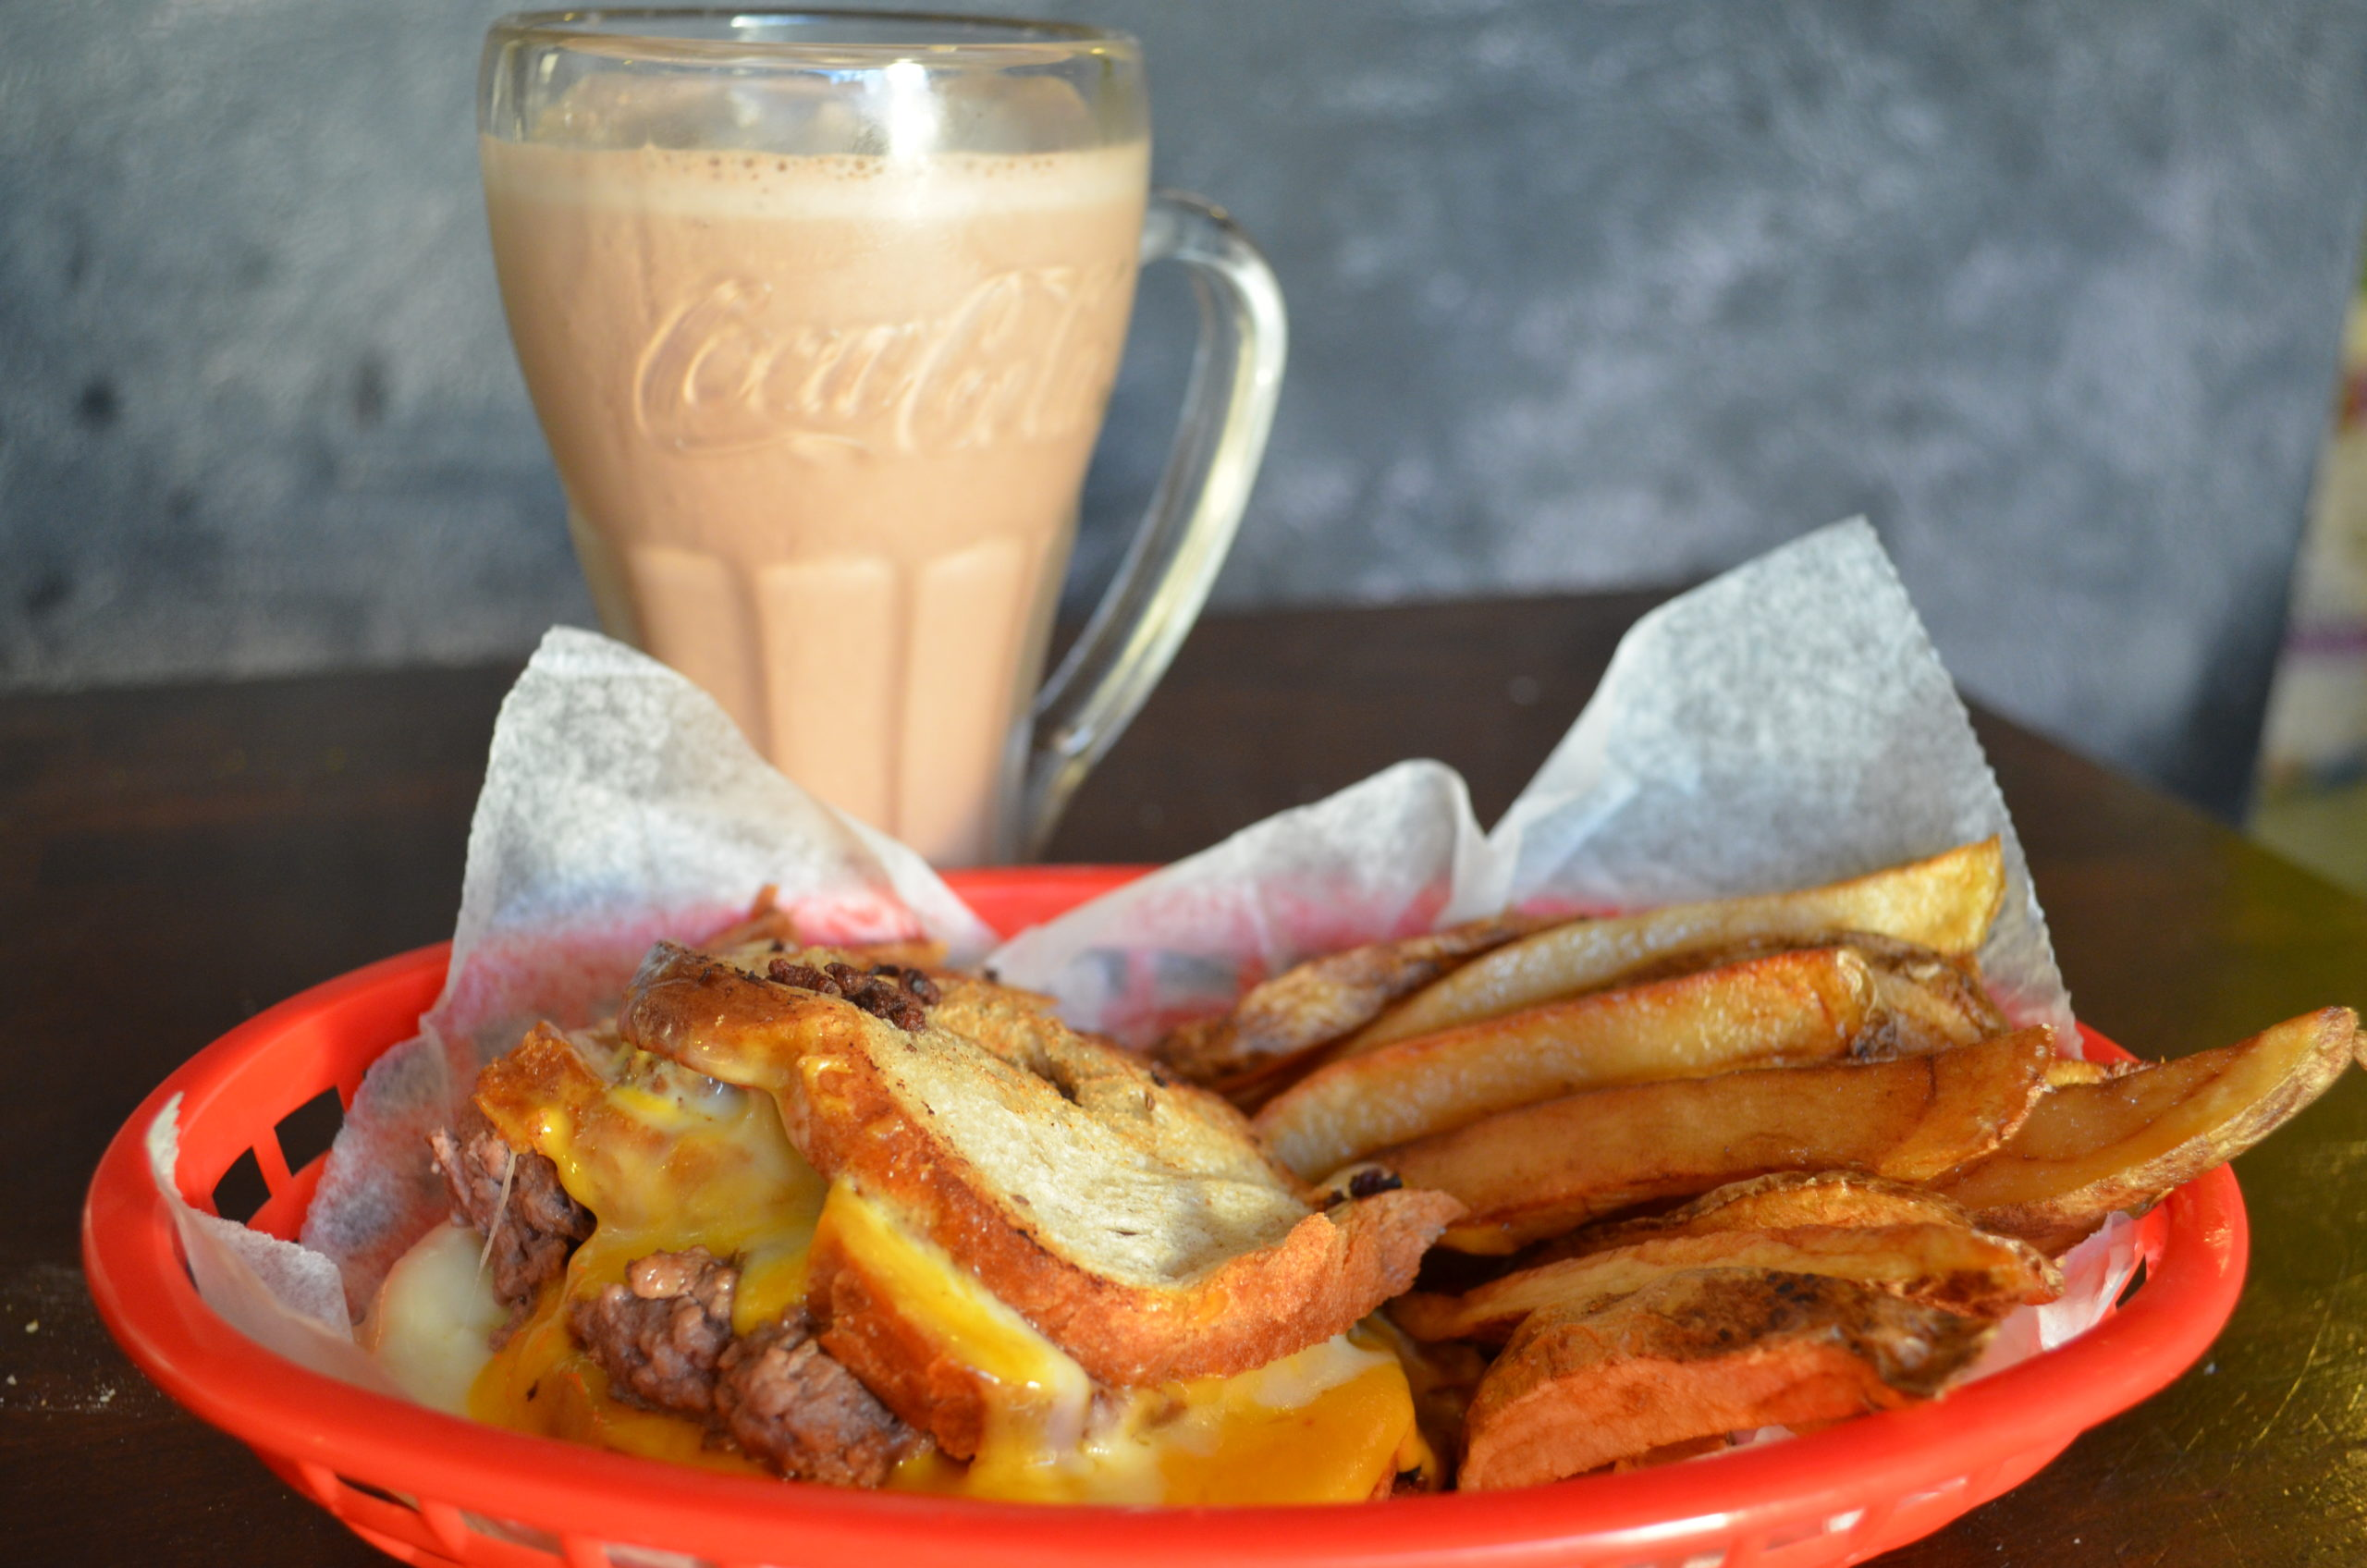 patty melt, hand cut fries, chocolate milkshake